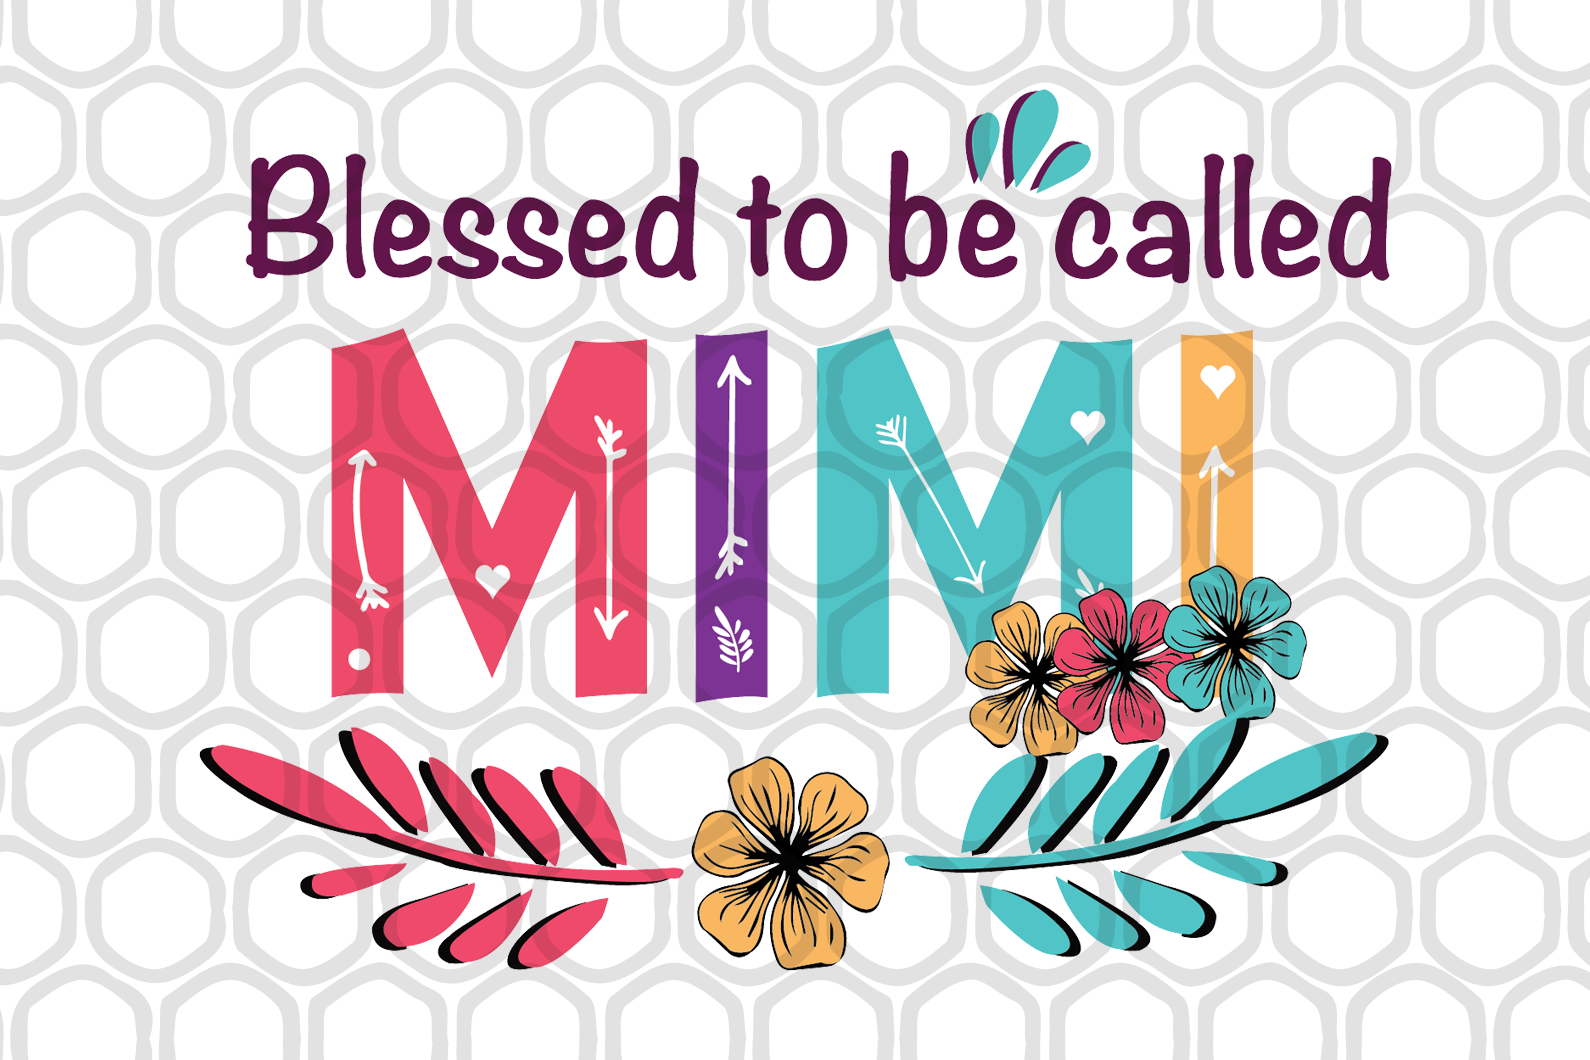 Blessed to be called mimi, mimi shirt, blessed mimi svg, mimi, mimi gift, mimi svg, gift for mimi,family svg , family shirt,family gift,trending svg, Files For Silhouette, Files For Cricut, SVG, DXF, EPS, PNG, Instant Download